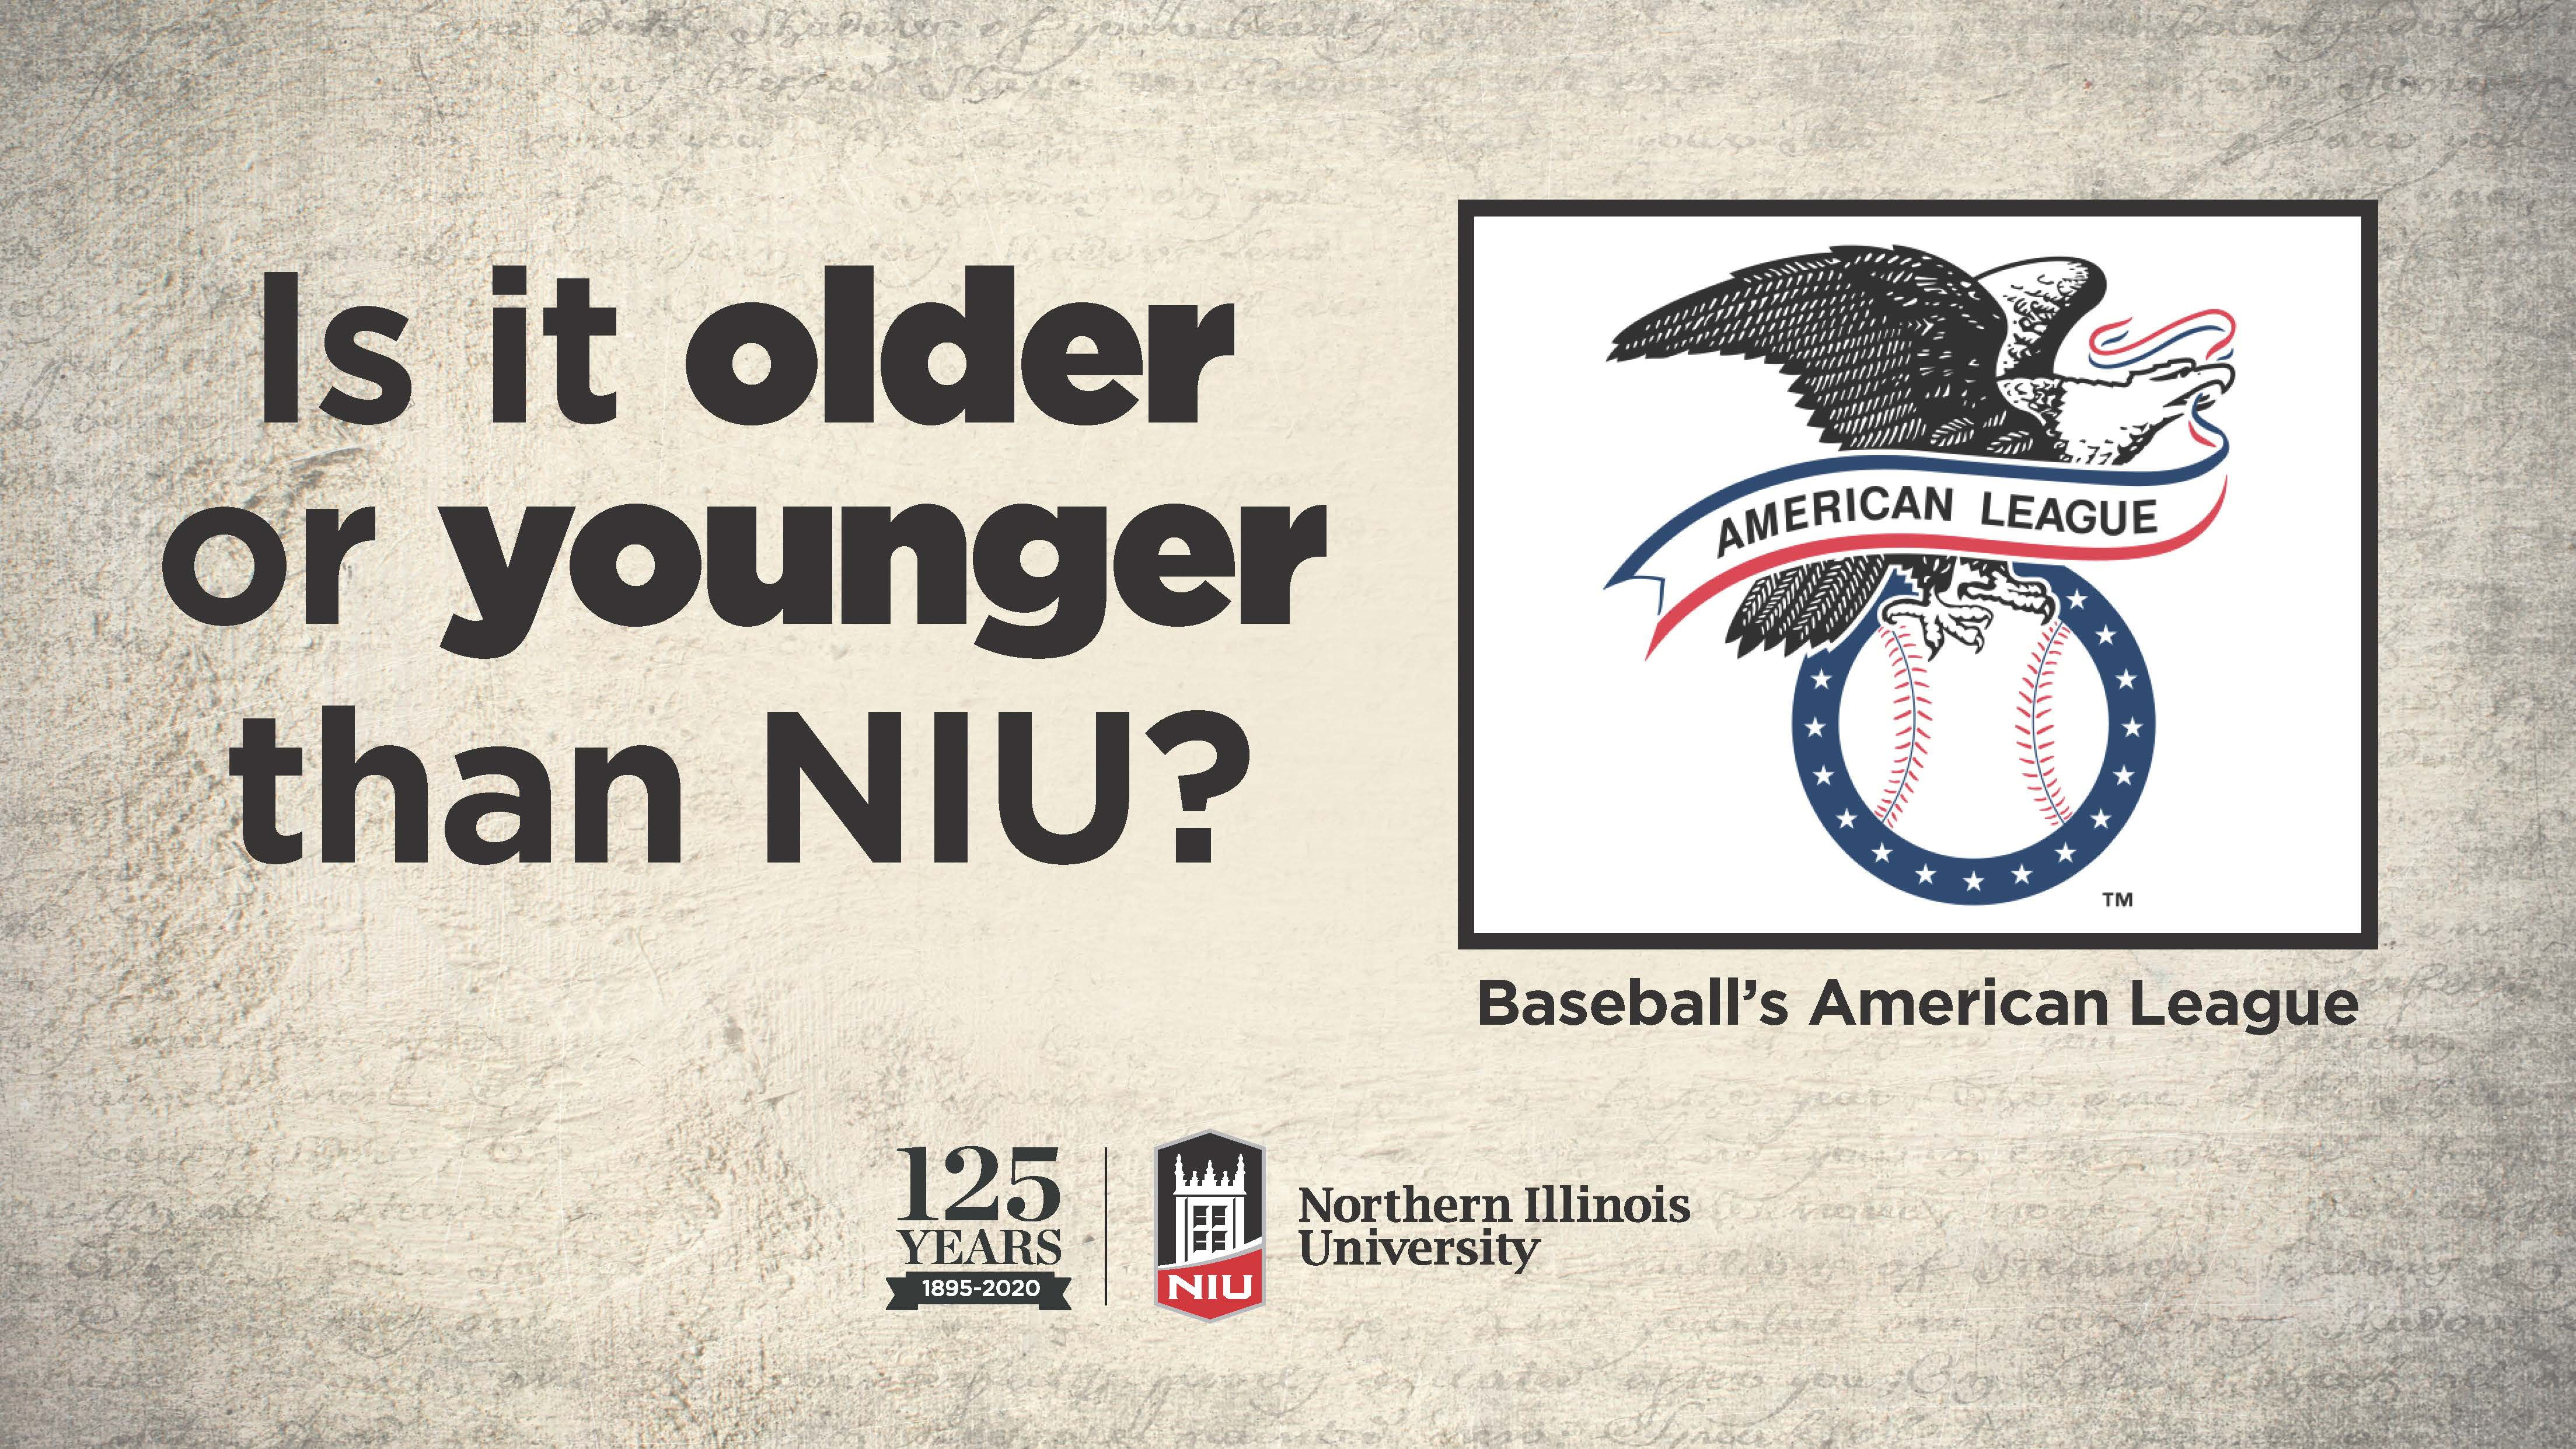 Is baseball's American League older or younger than NIU?